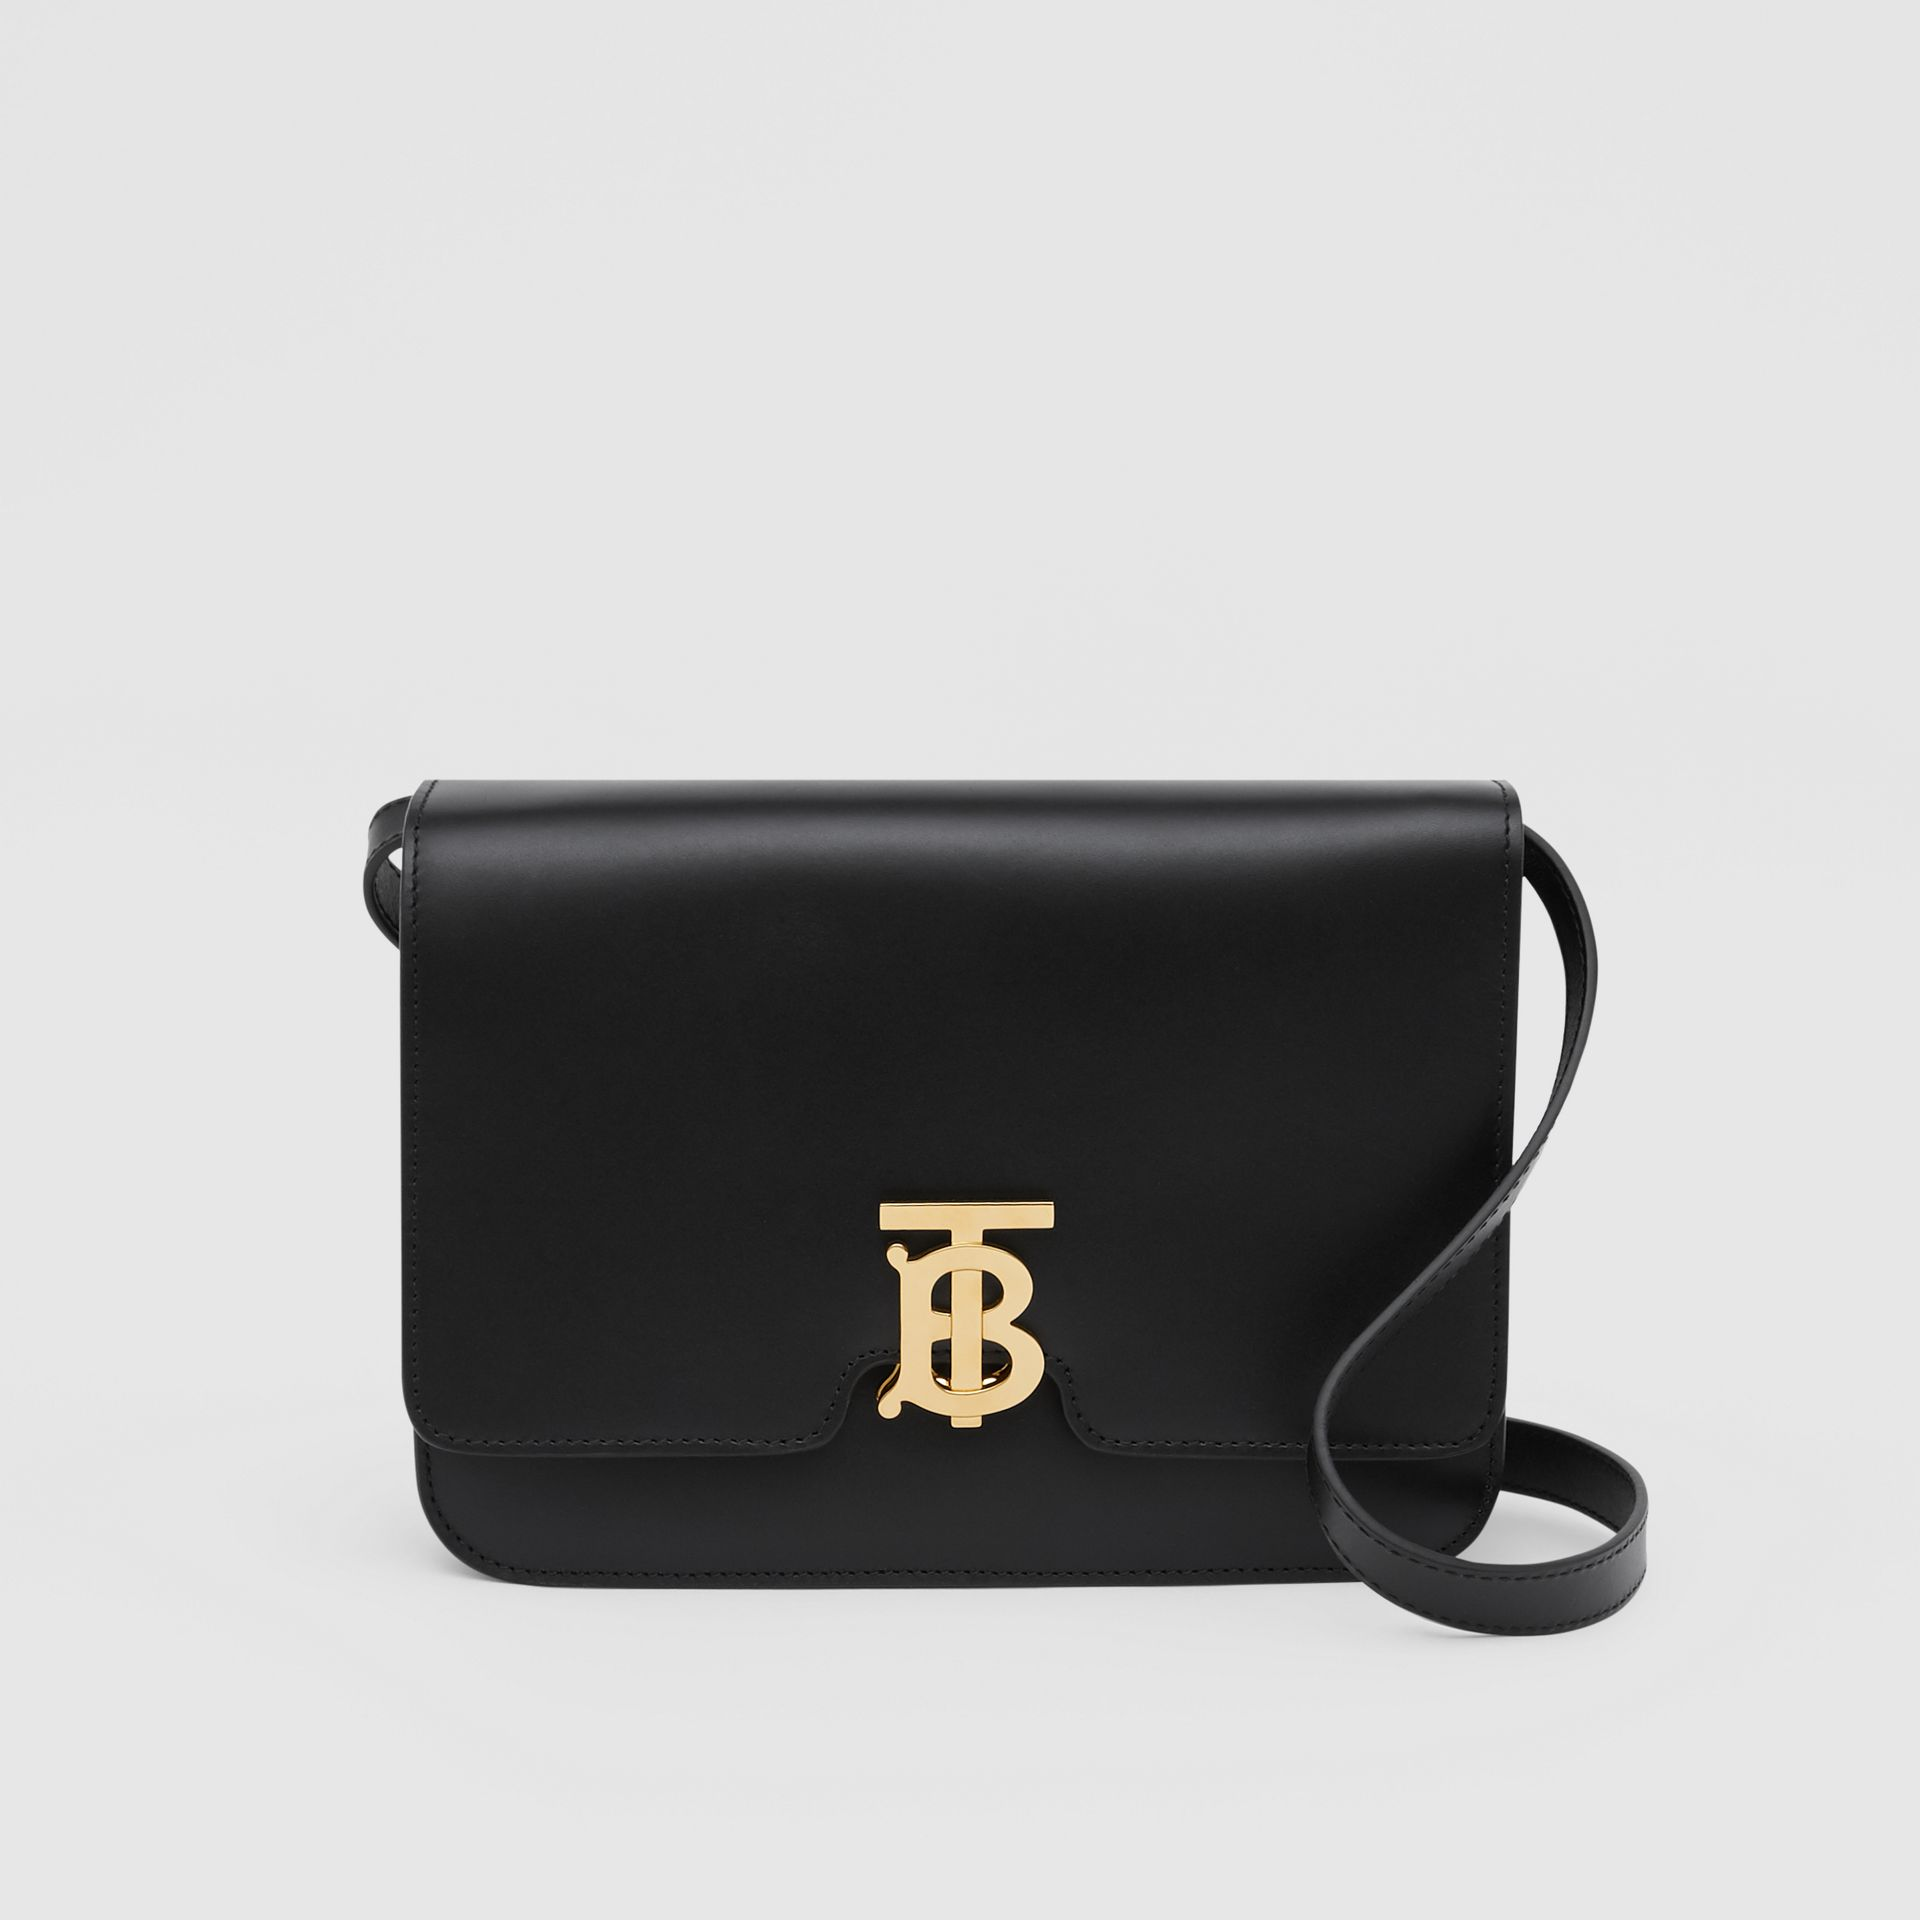 Medium Leather TB Bag in Black - Women | Burberry - gallery image 0